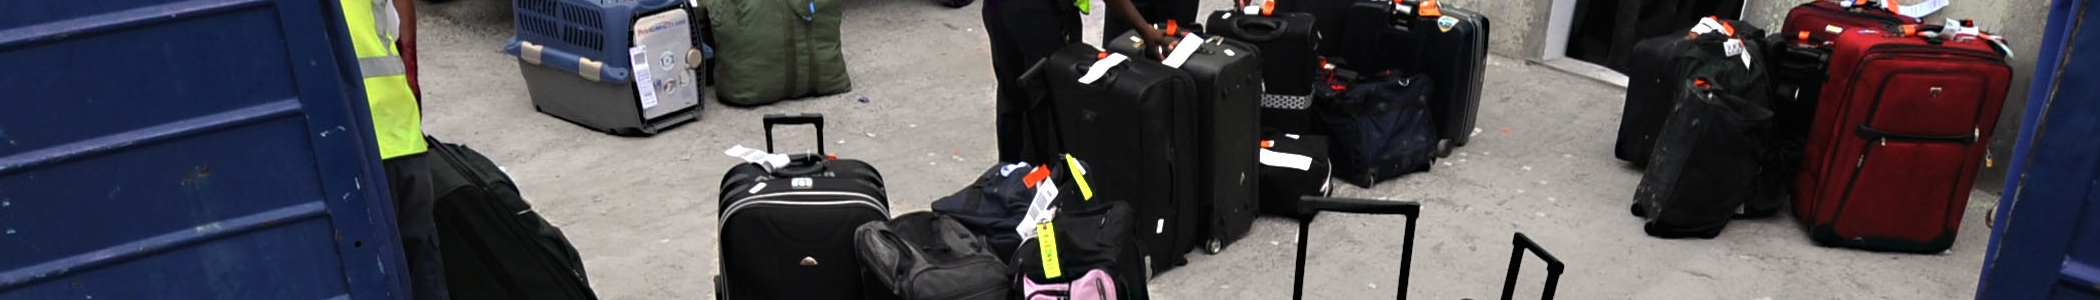 2e823786f4f6 Flight baggage – Travel guide at Wikivoyage